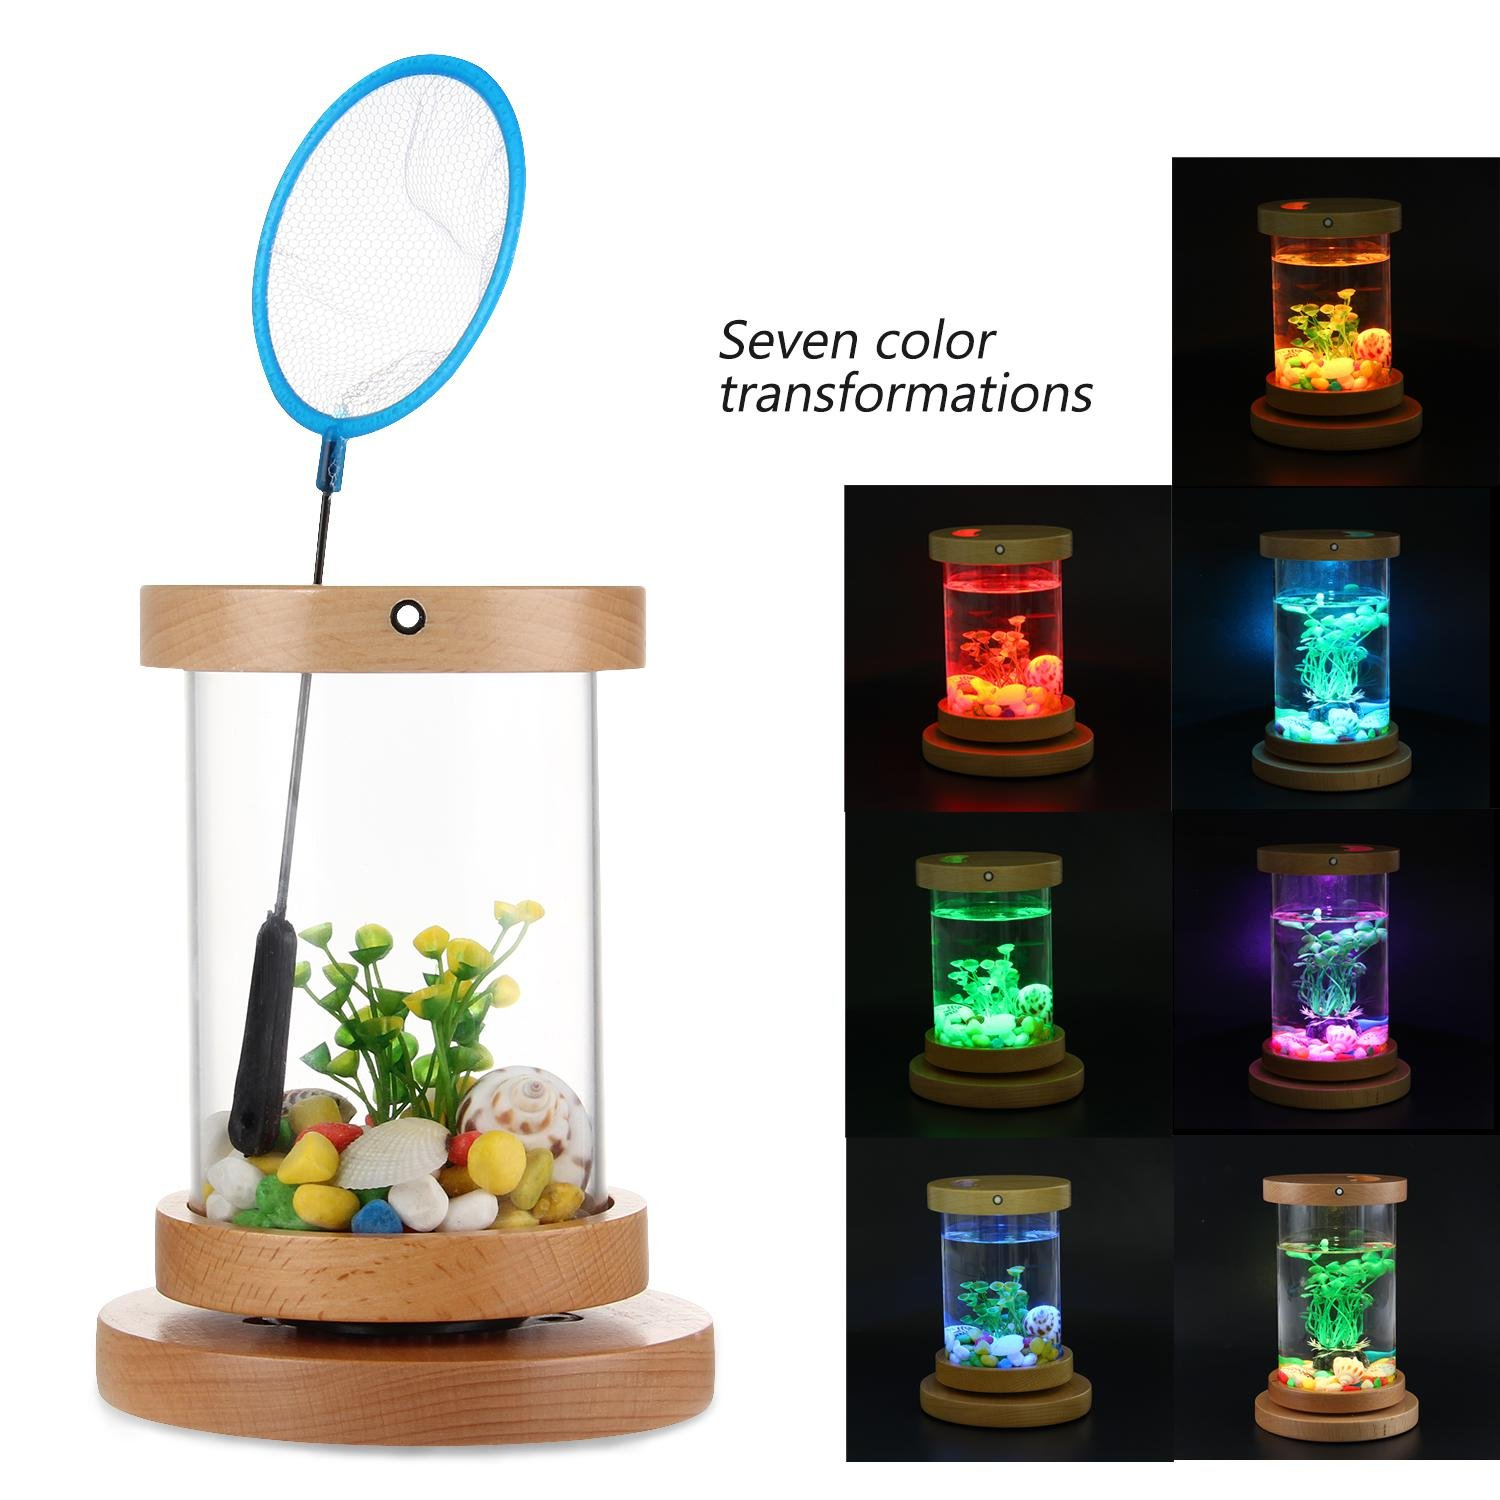 Small Mini LED Fish Aquarium Kits,Panoramic Betta Fish Tank with Low Radiation Energy-Saving Soothing Light.